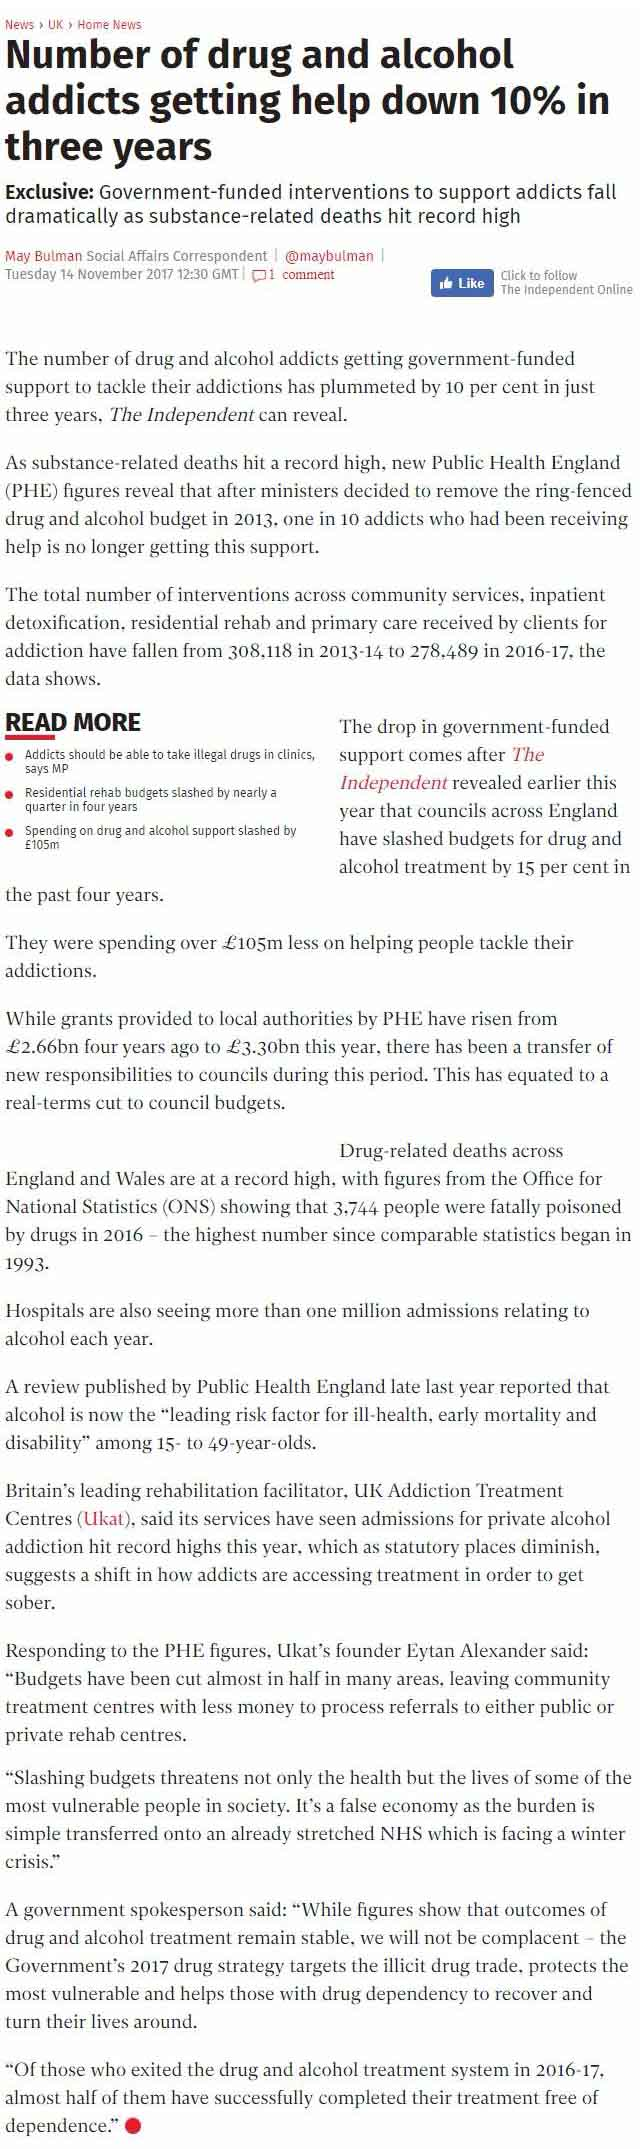 The Independent - UKAT's Eytan Alexander Says Government Shouldn't Have Cut Budgets for Addiction Help